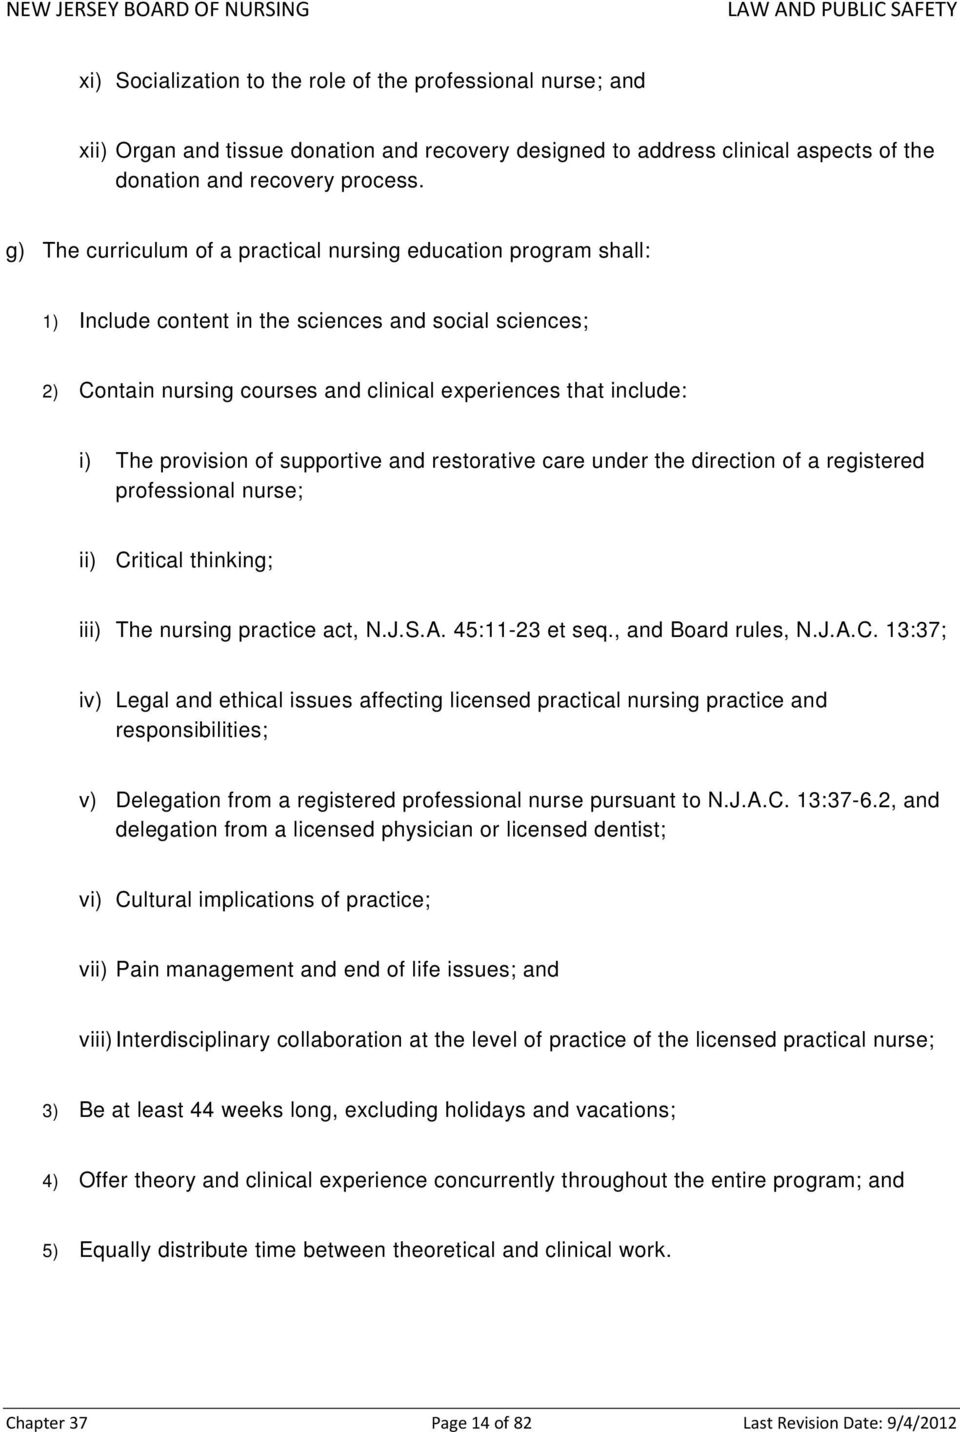 provision of supportive and restorative care under the direction of a registered professional nurse; ii) Critical thinking; iii) The nursing practice act, N.J.S.A. 45:11-23 et seq.